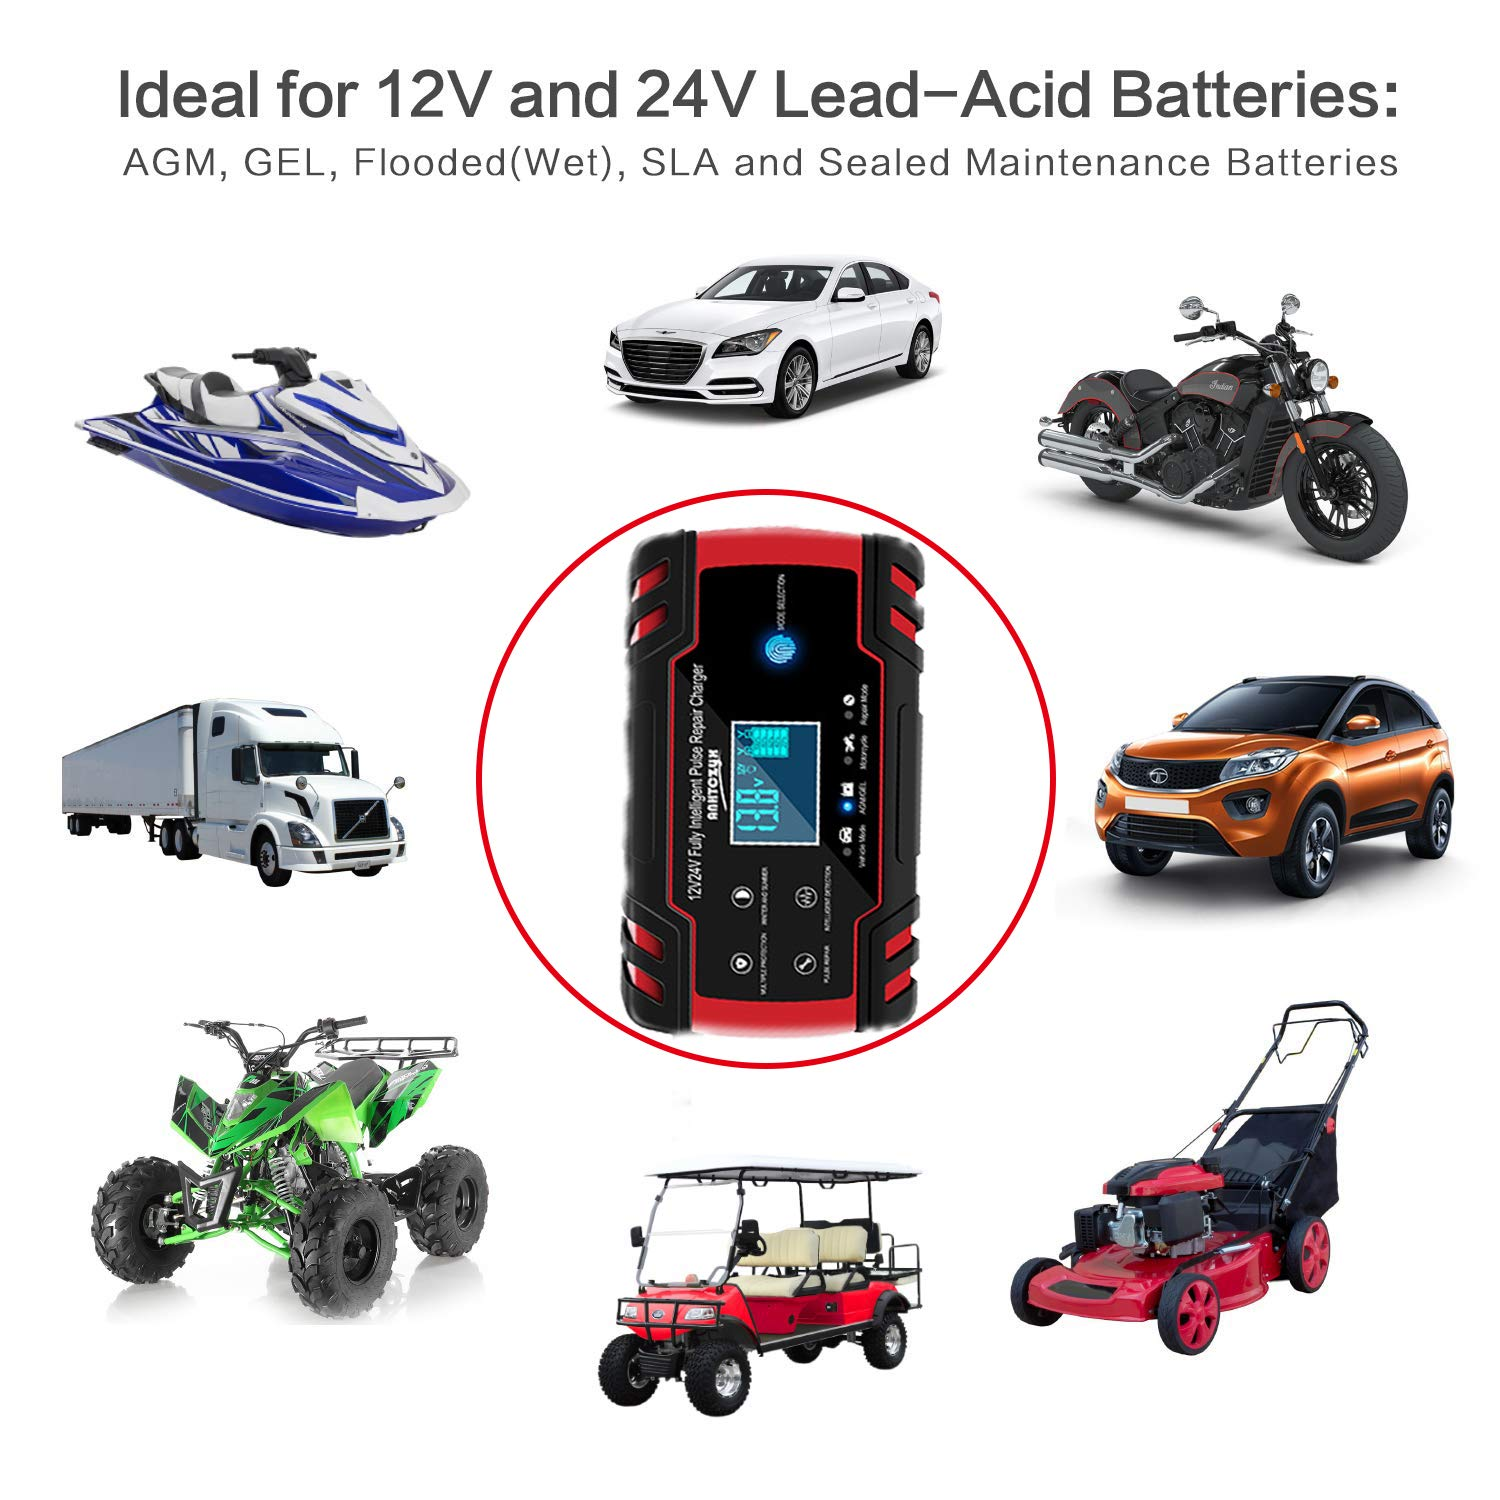 12V//24V 8Amp Intelligent Automatic Battery Charger//Maintainer Delivers 3 Stage Charging with LCD Screen And have 6 Charging Mode Suitable for More Types of Batteries BUDDYGO Car Battery Charger